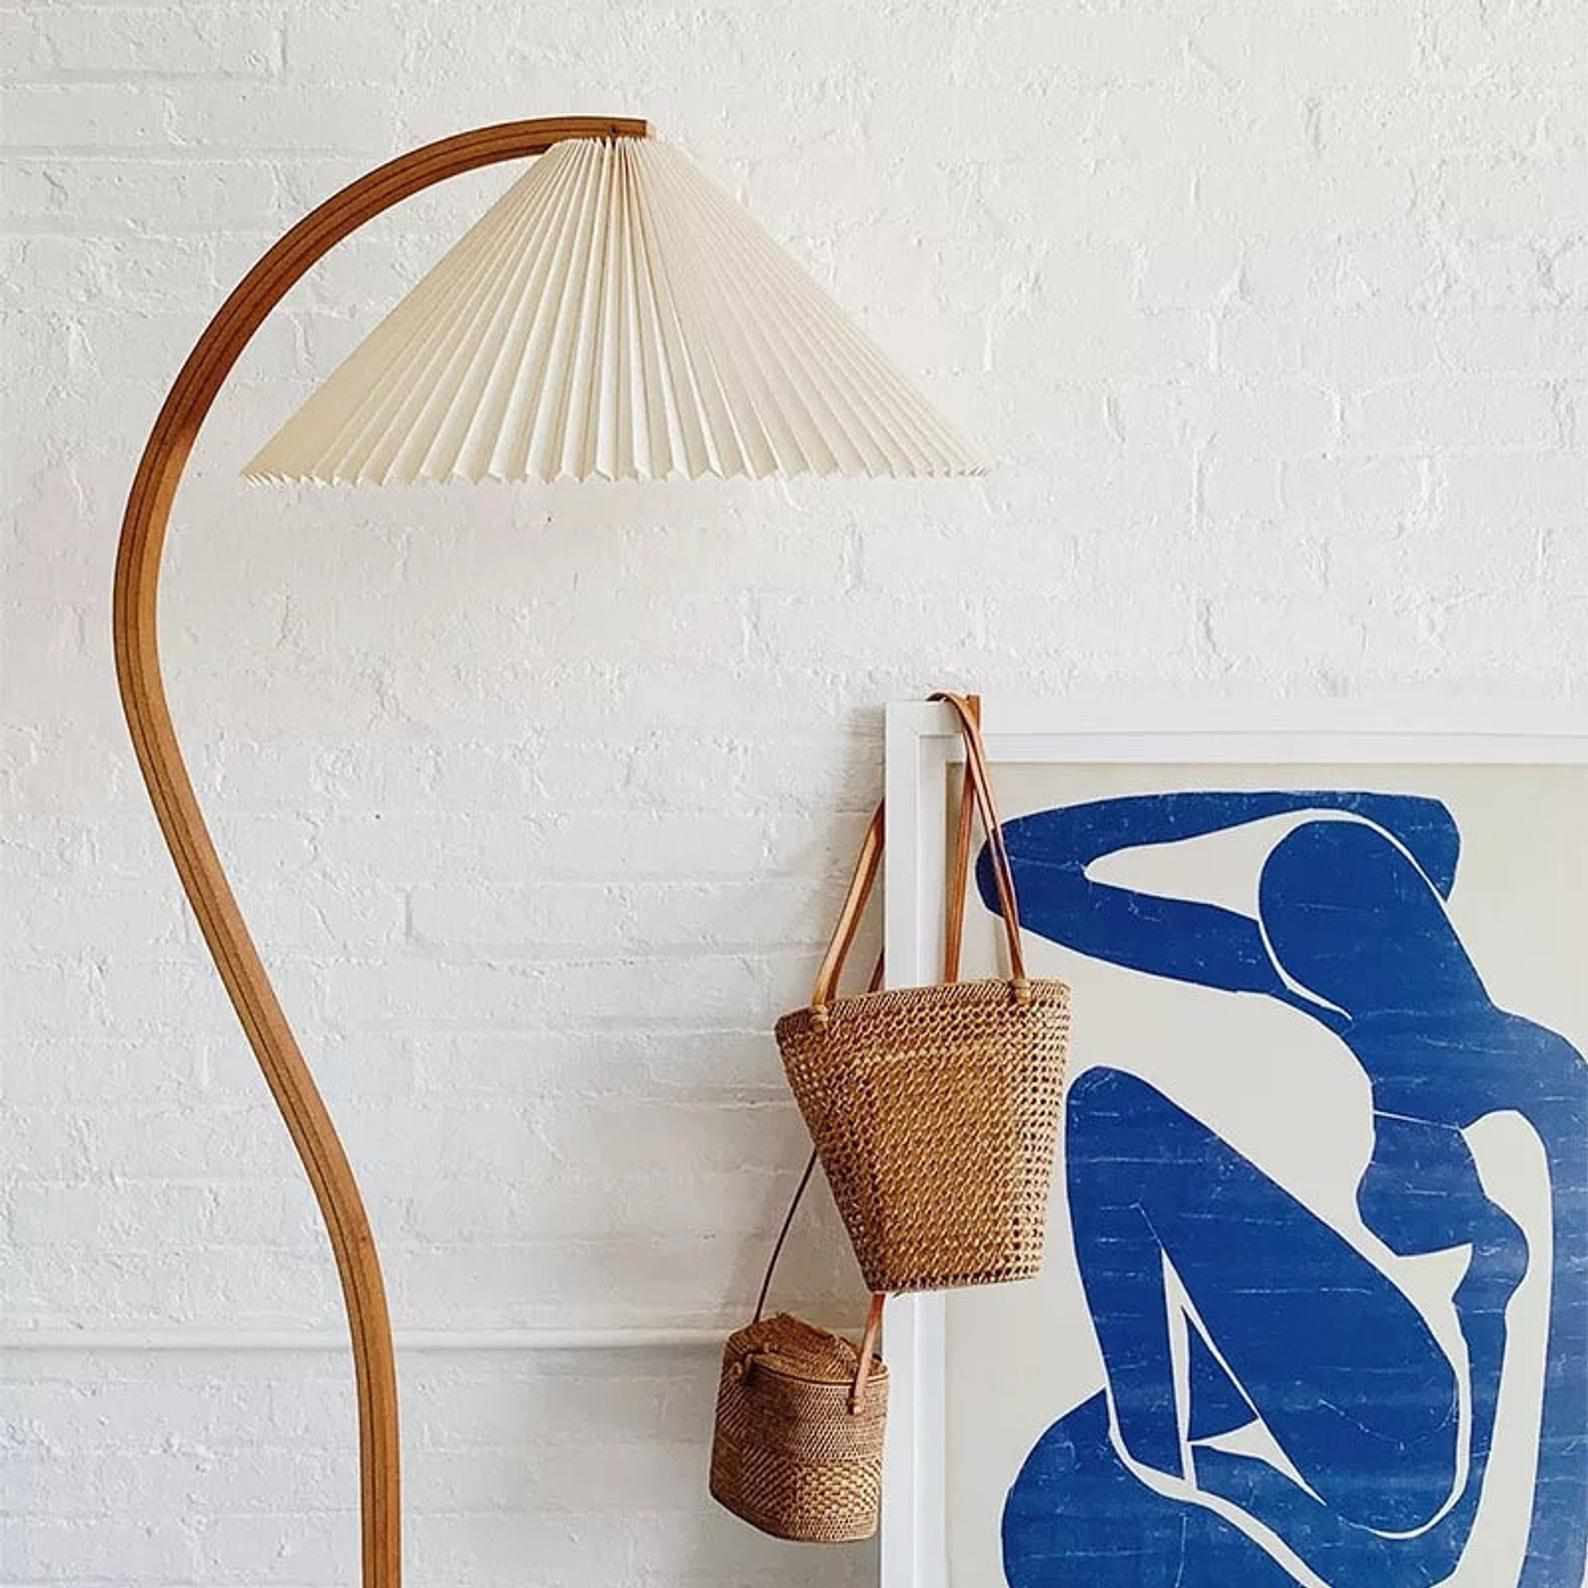 A wooden floor lamp with a pleated lamp shade, currently for sale at Etsy